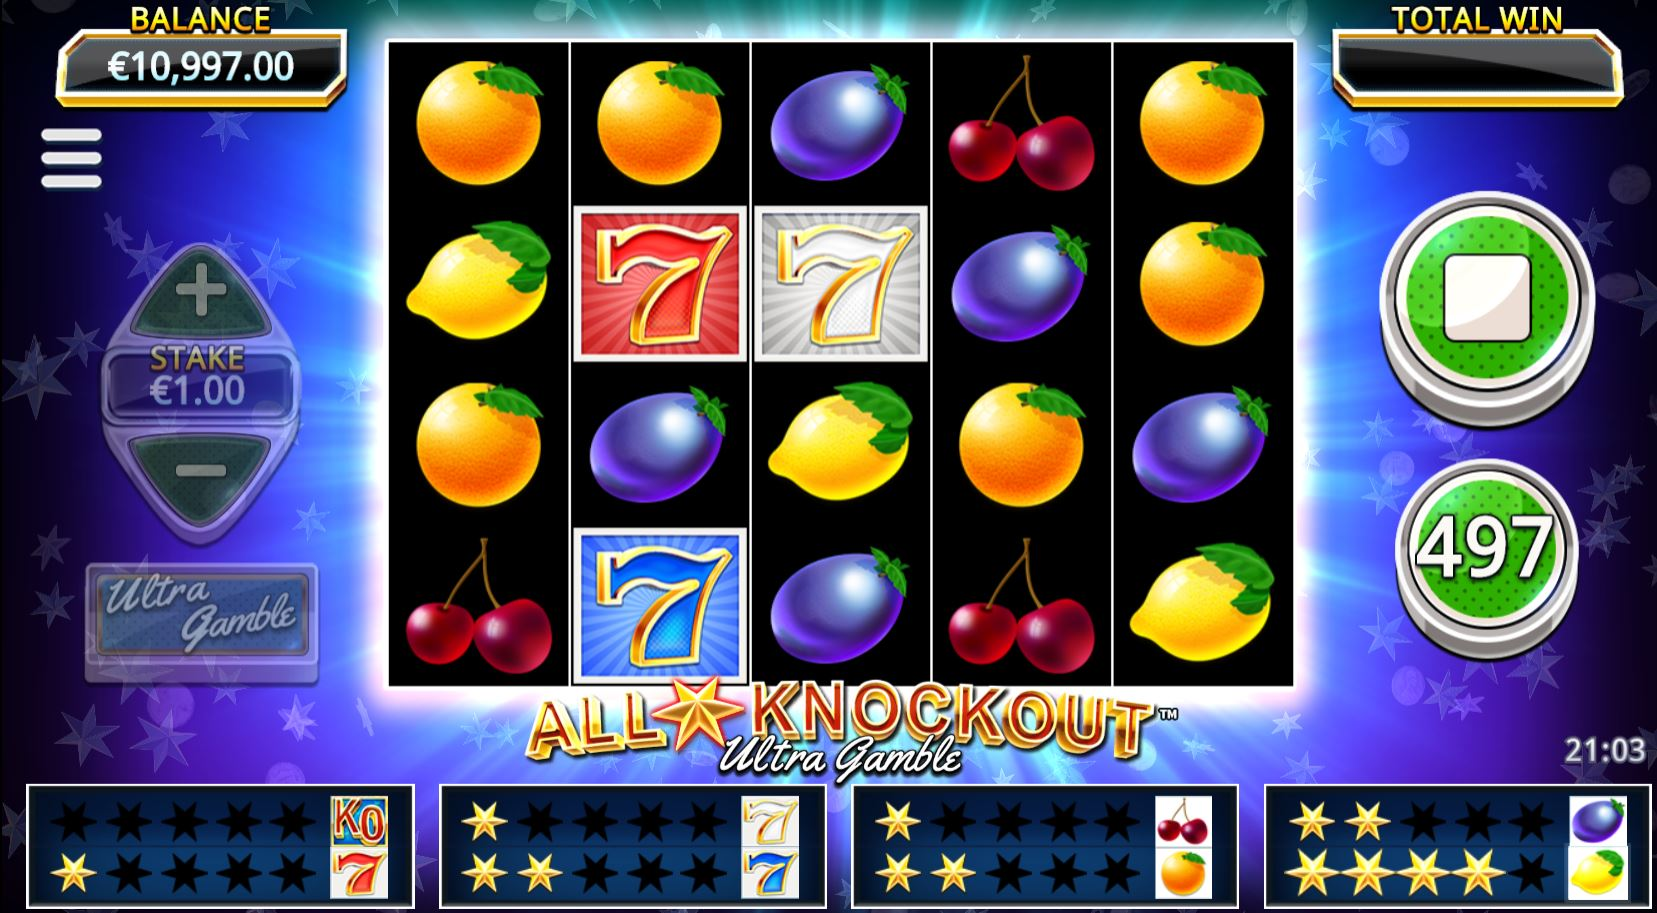 All Star Knockout Ultra Gamble Slots Game